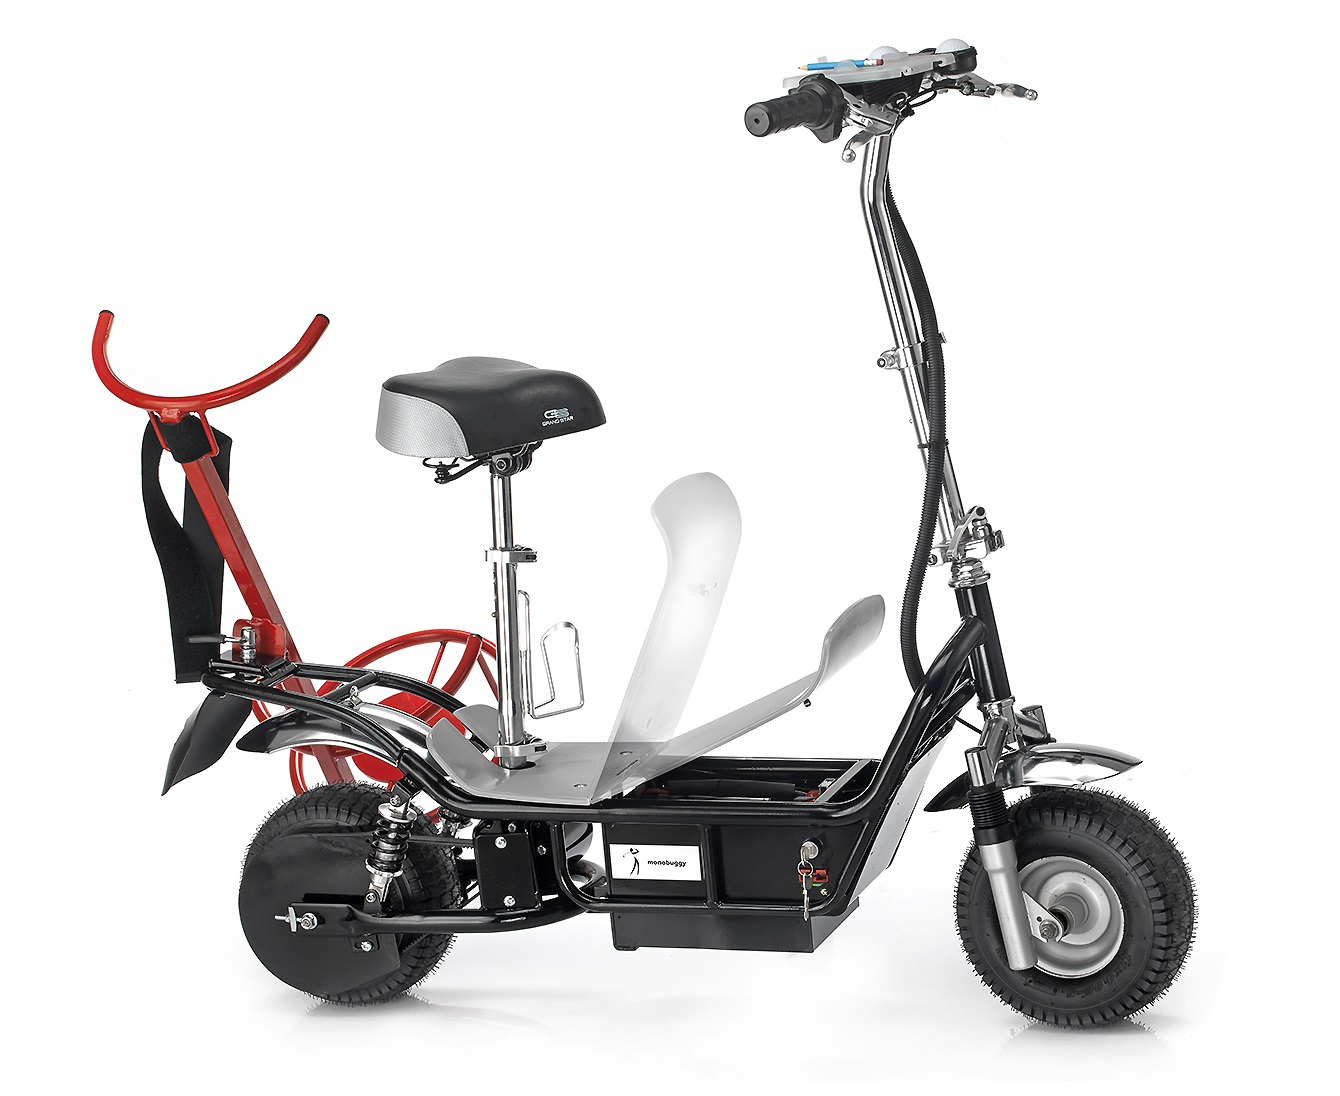 Scooter with Rack from right side and open Battery room